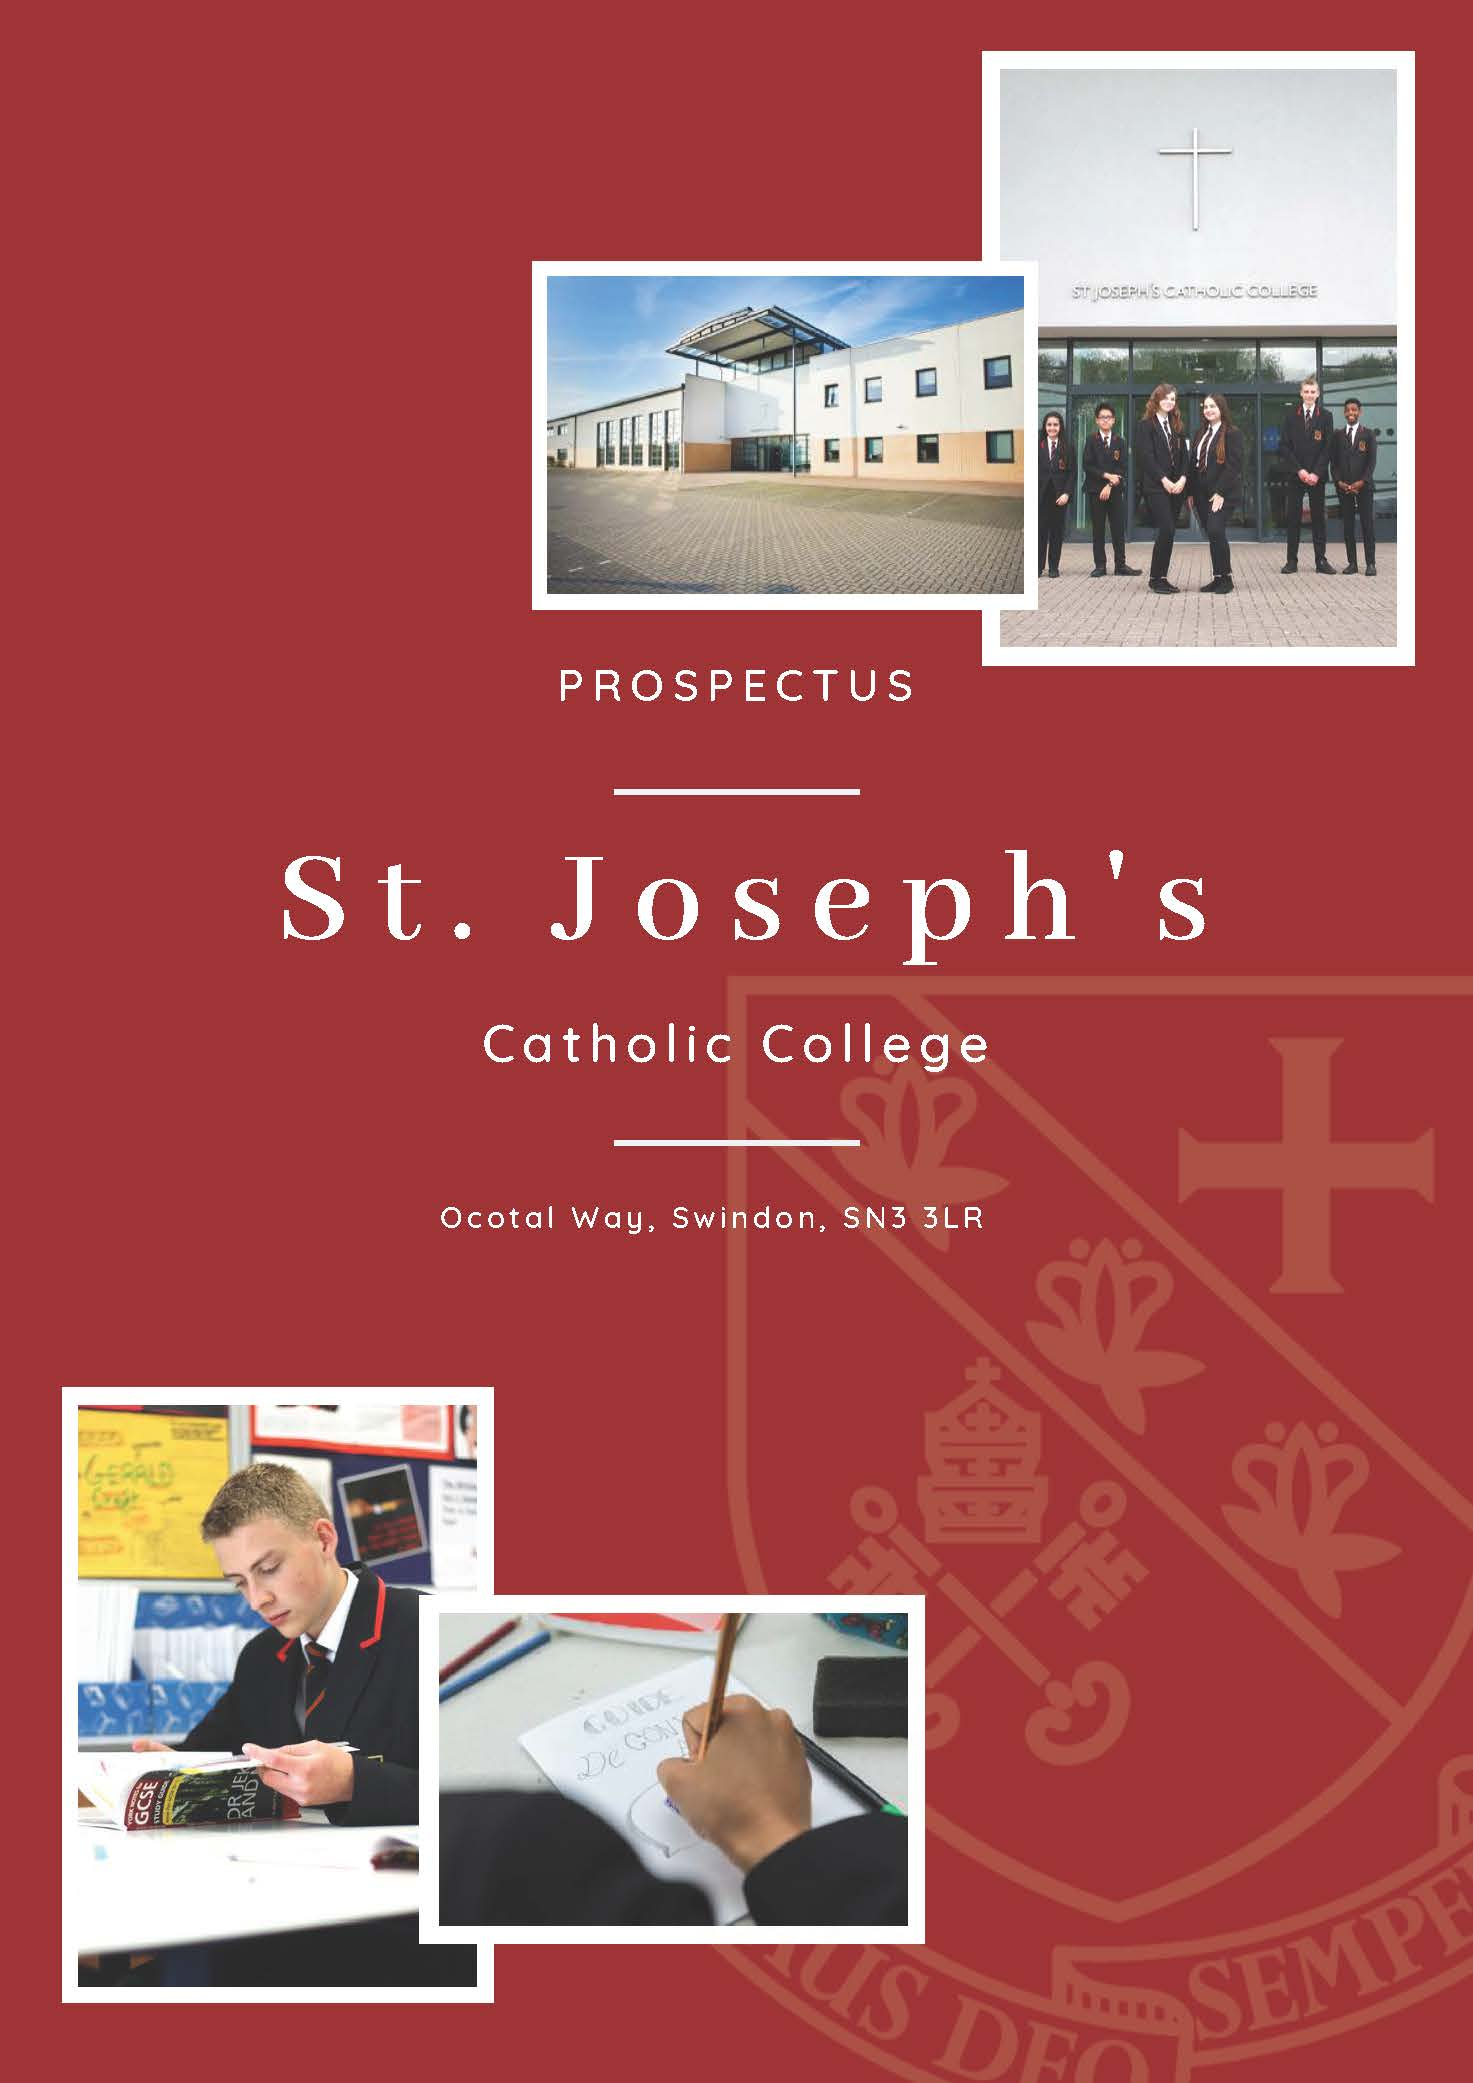 SJCC Prospectus April 2020 Update Reduced compressed Page 1